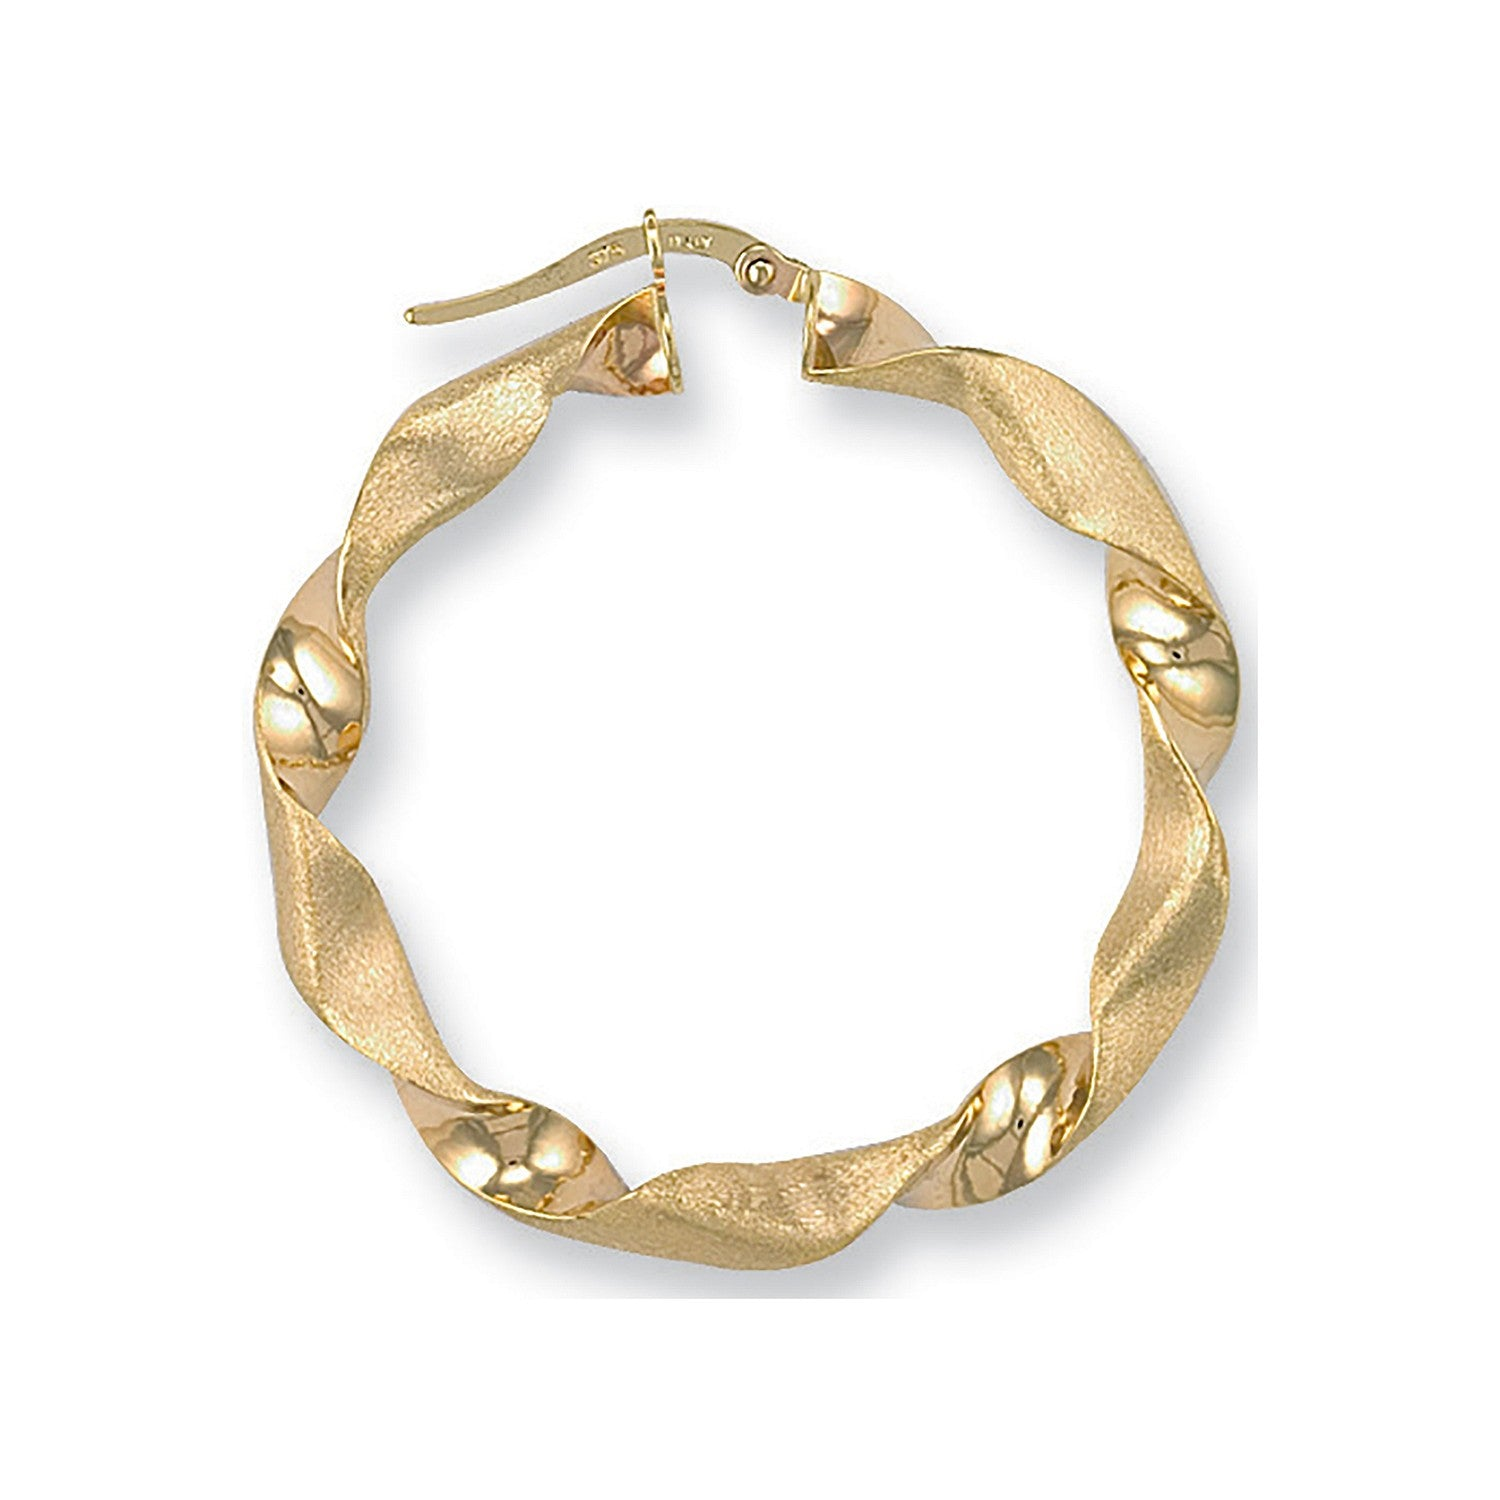 Y/G Frosted Twisted Hoop Earrings